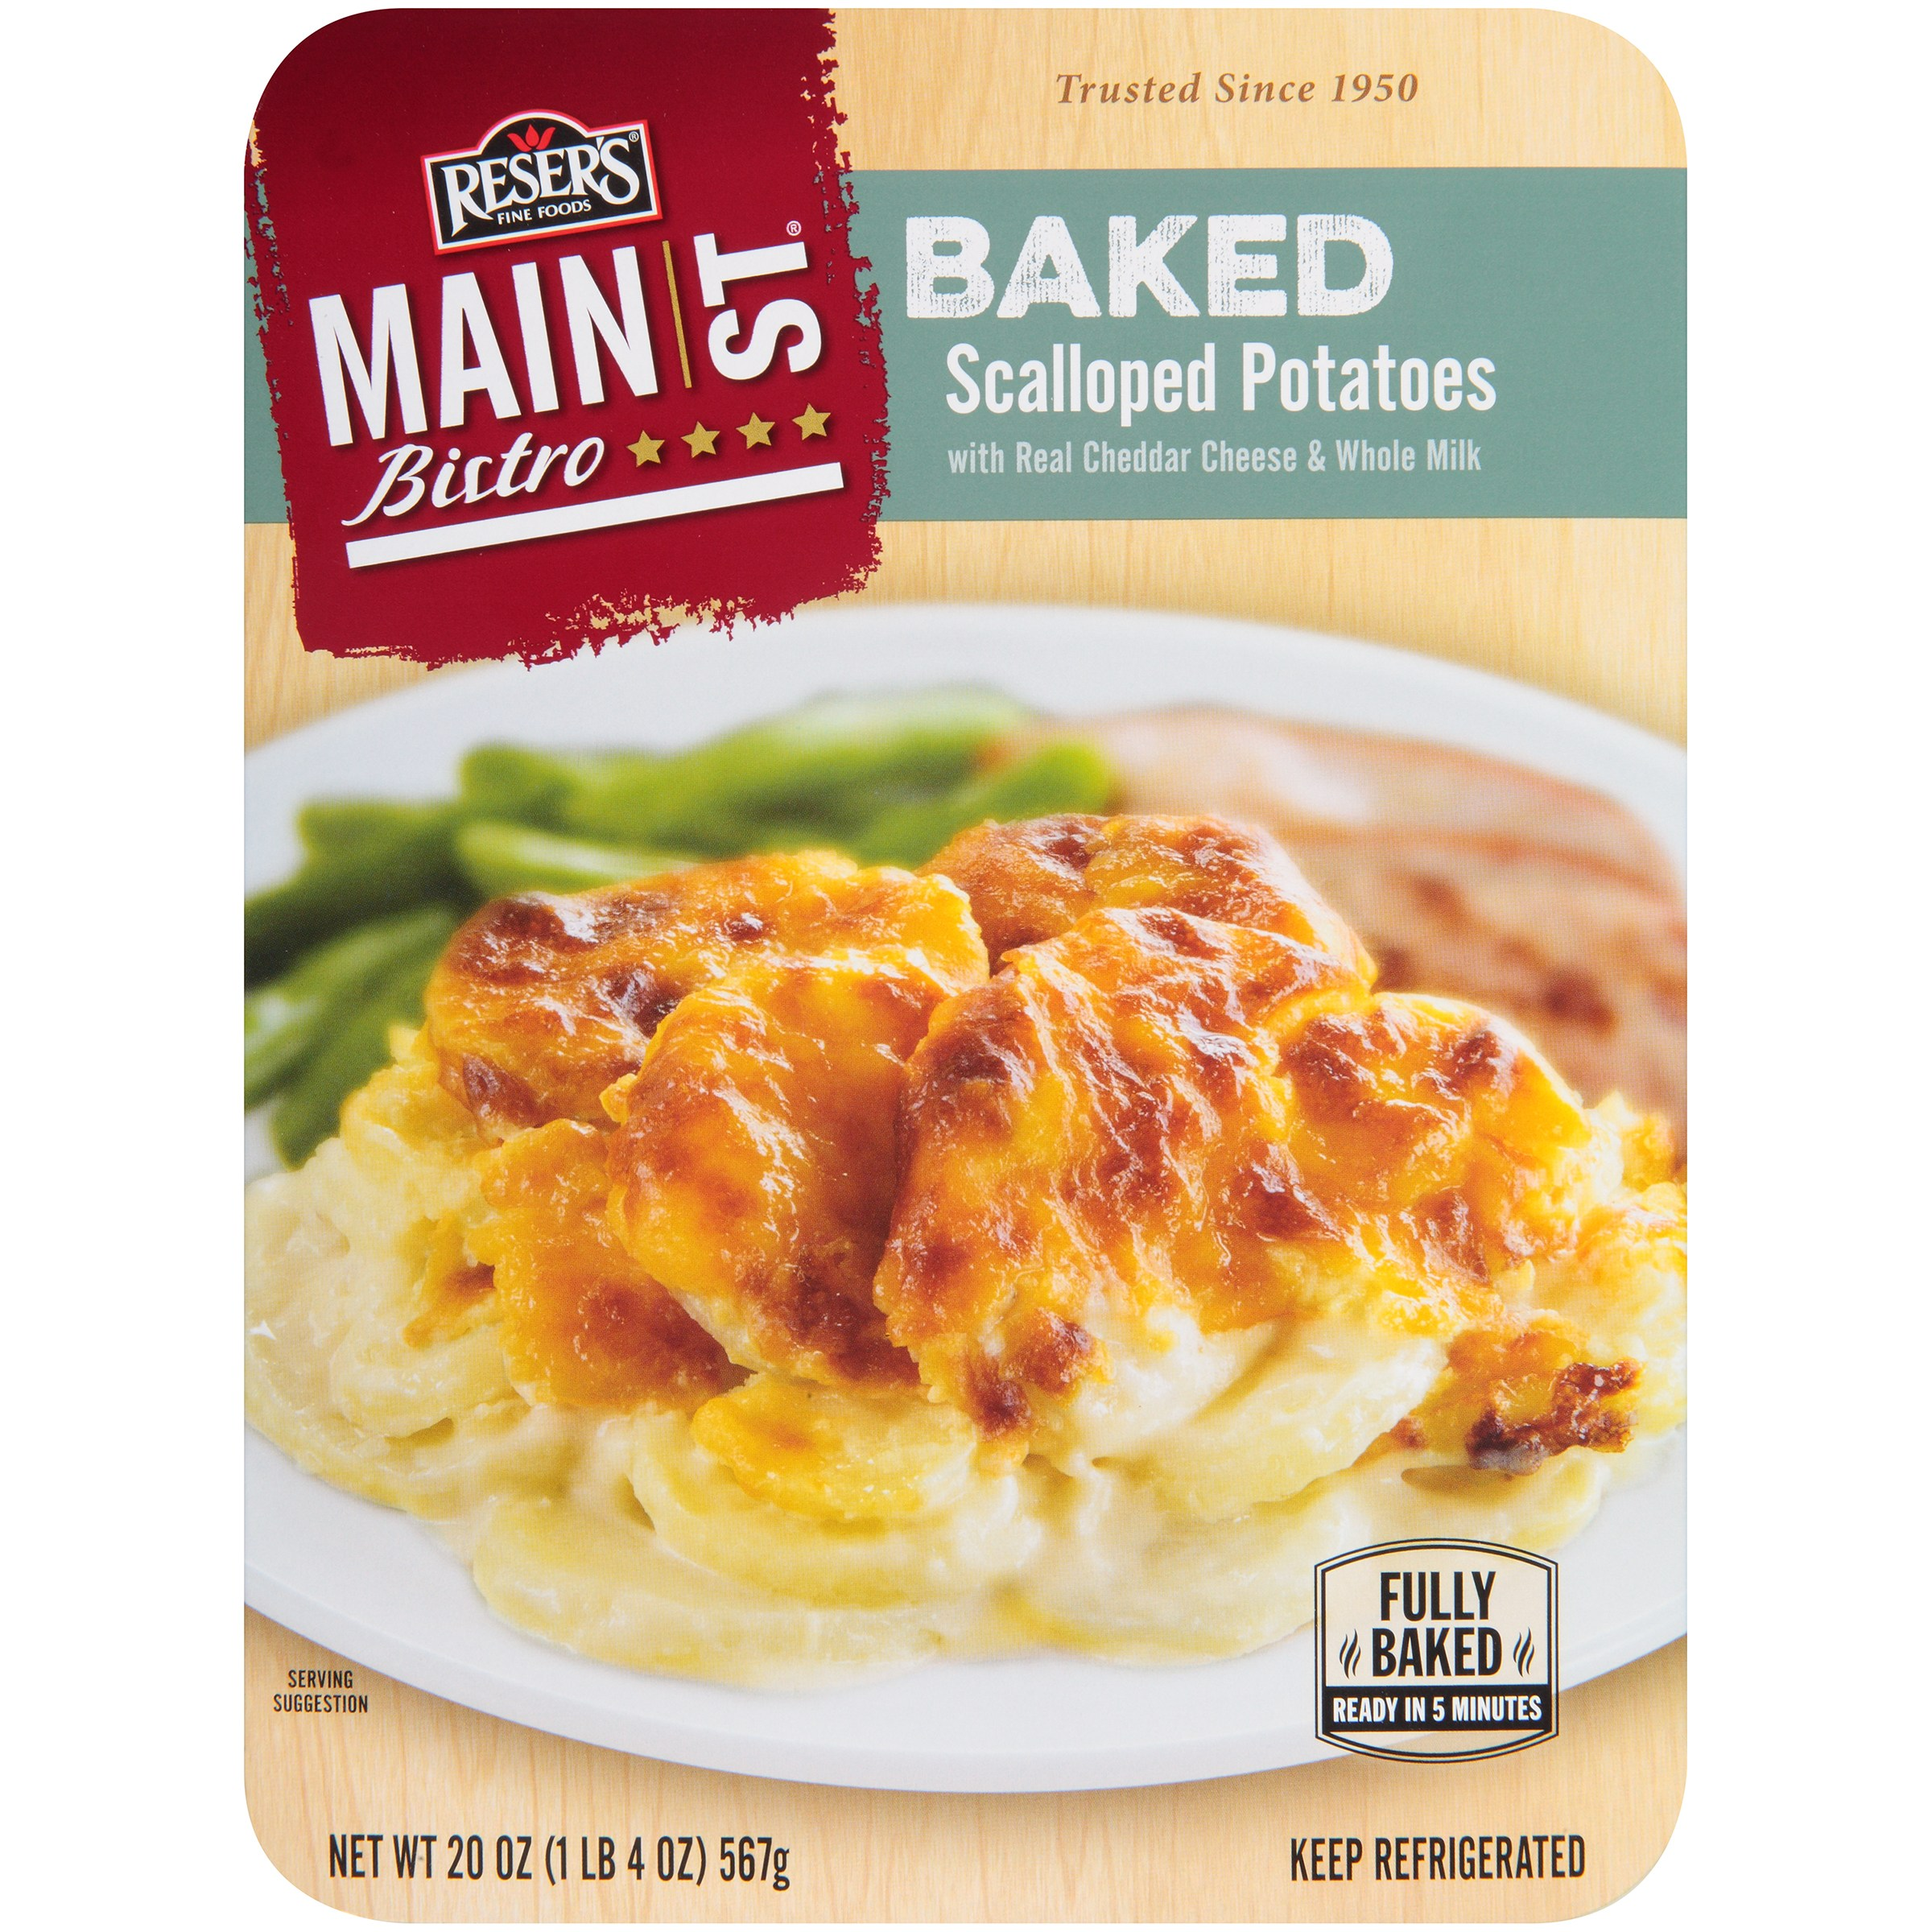 Reser's Main St Bistro Baked Scalloped Potatoes 20 oz. Box by Reser's Fine Foods